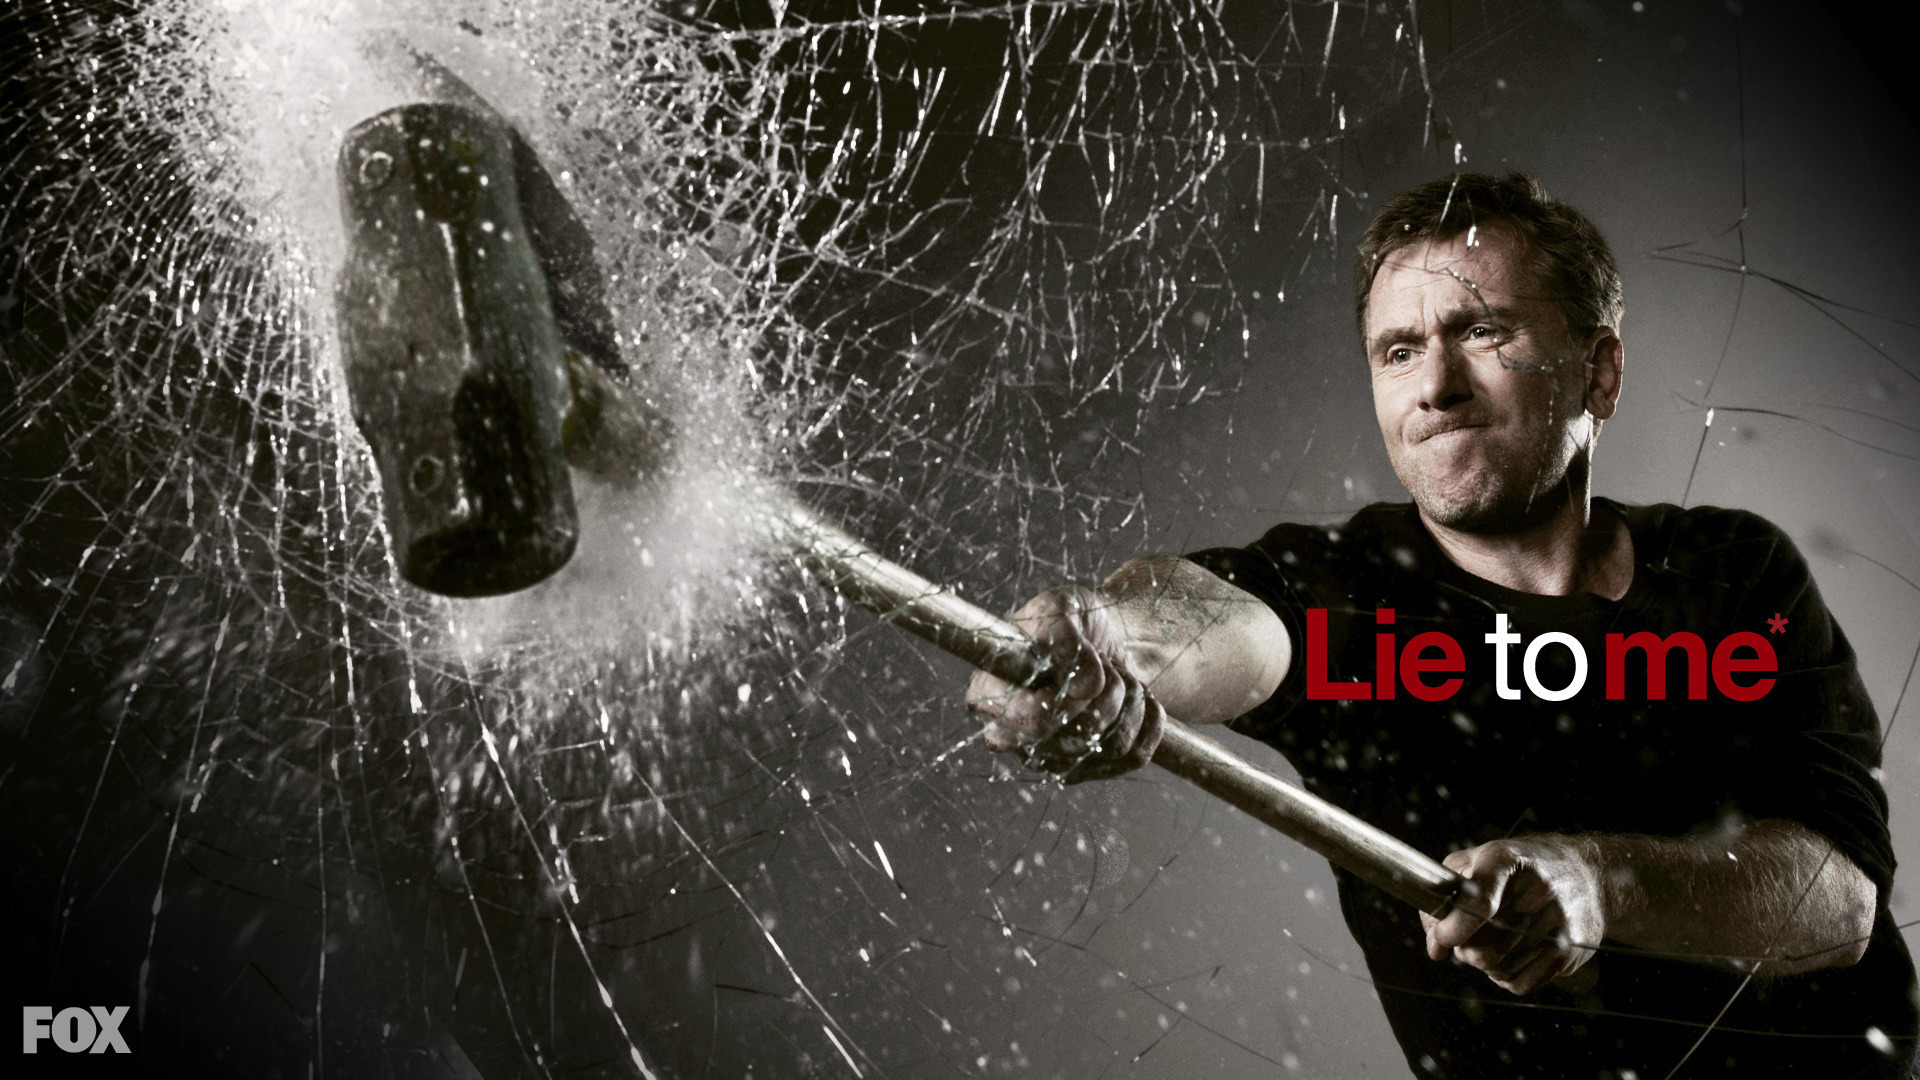 11889 download wallpaper Cinema, People, Actors, Men, Lie To Me, Tim Roth screensavers and pictures for free